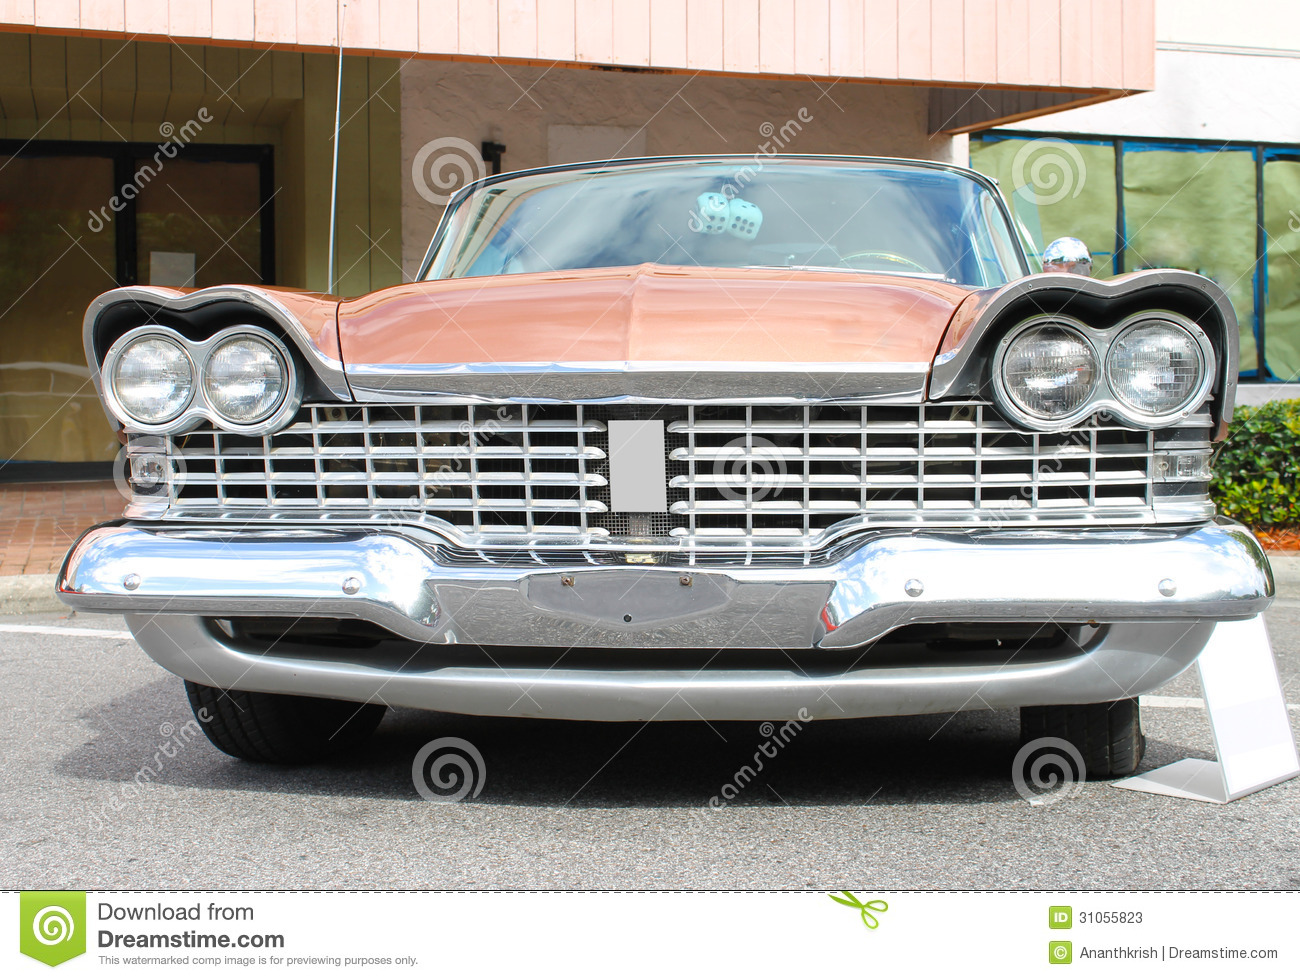 Old Plymouth Car stock image. Image of touring, plymouth - 31055823